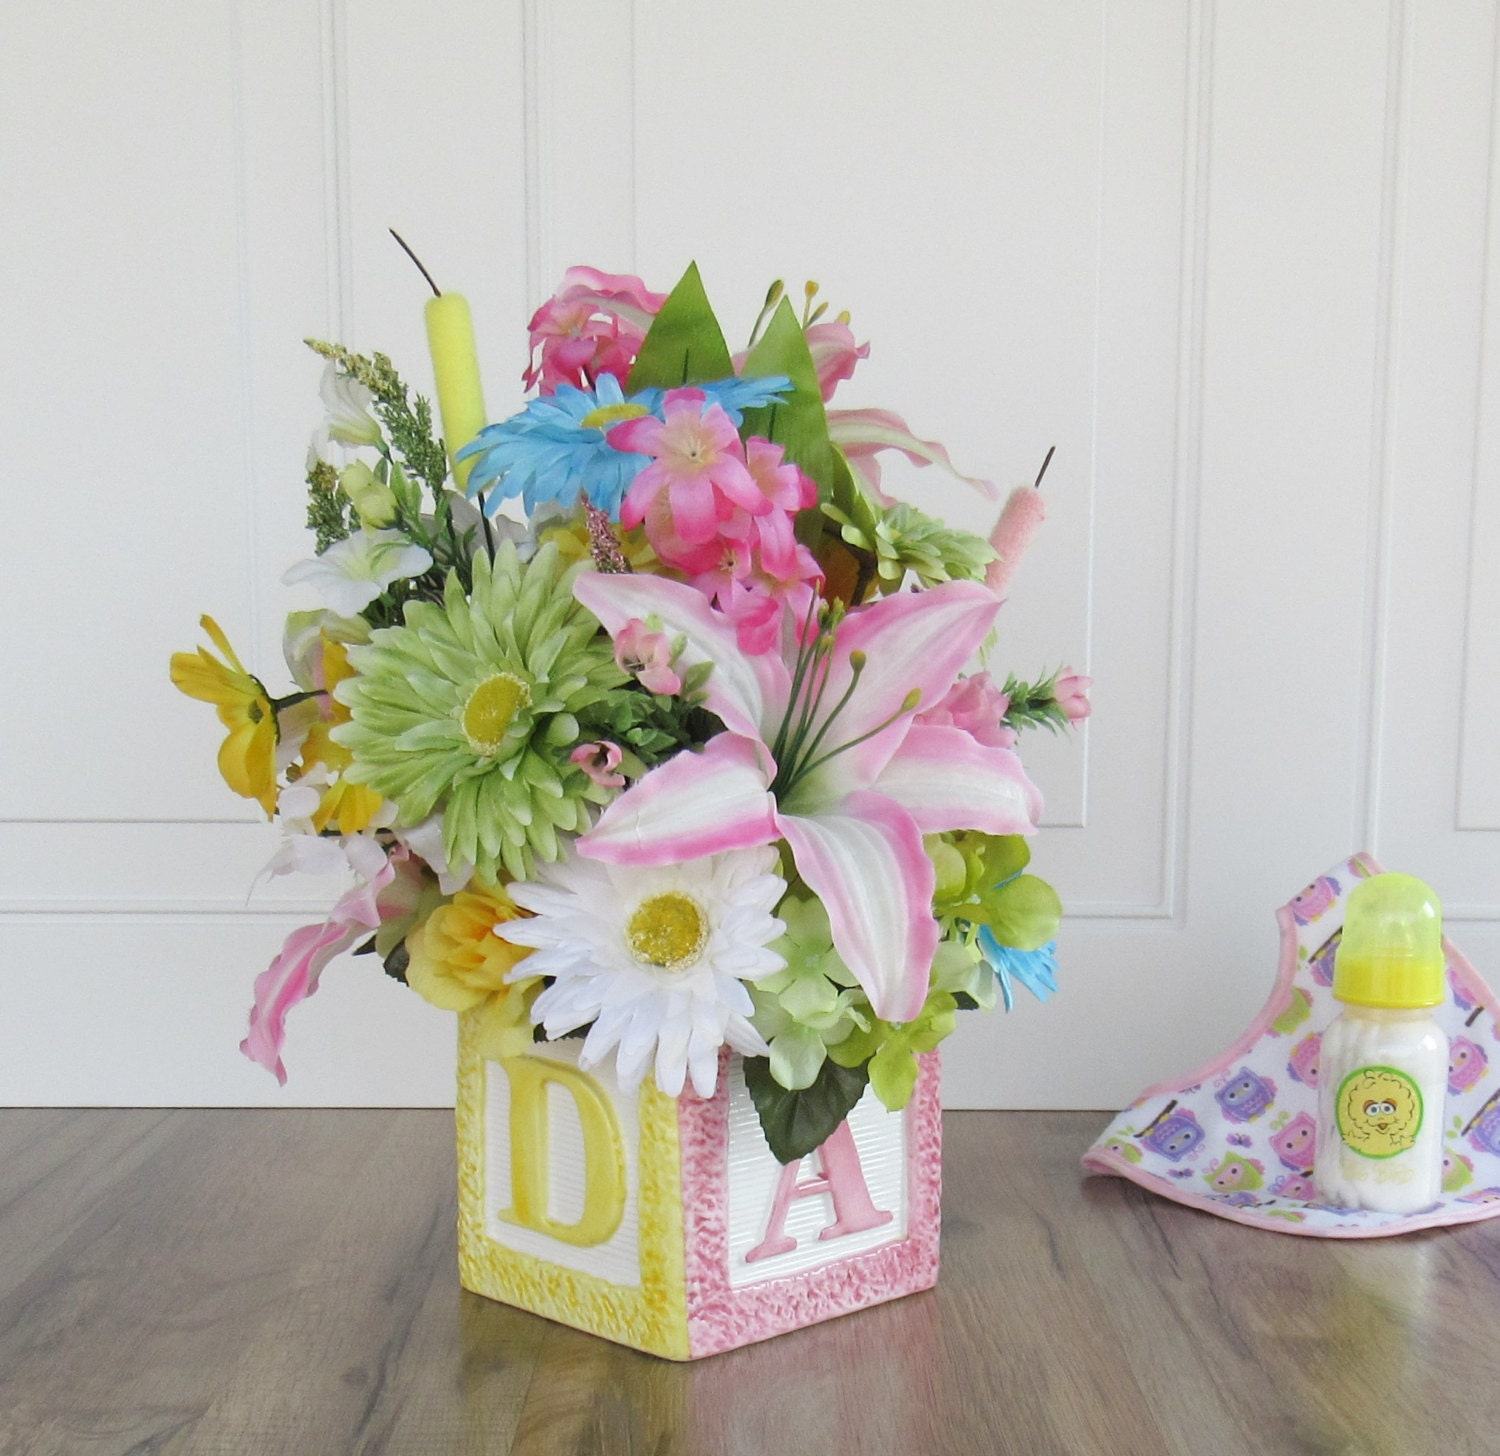 Baby Shower Flower Arrangements Centerpieces | baby shower ...